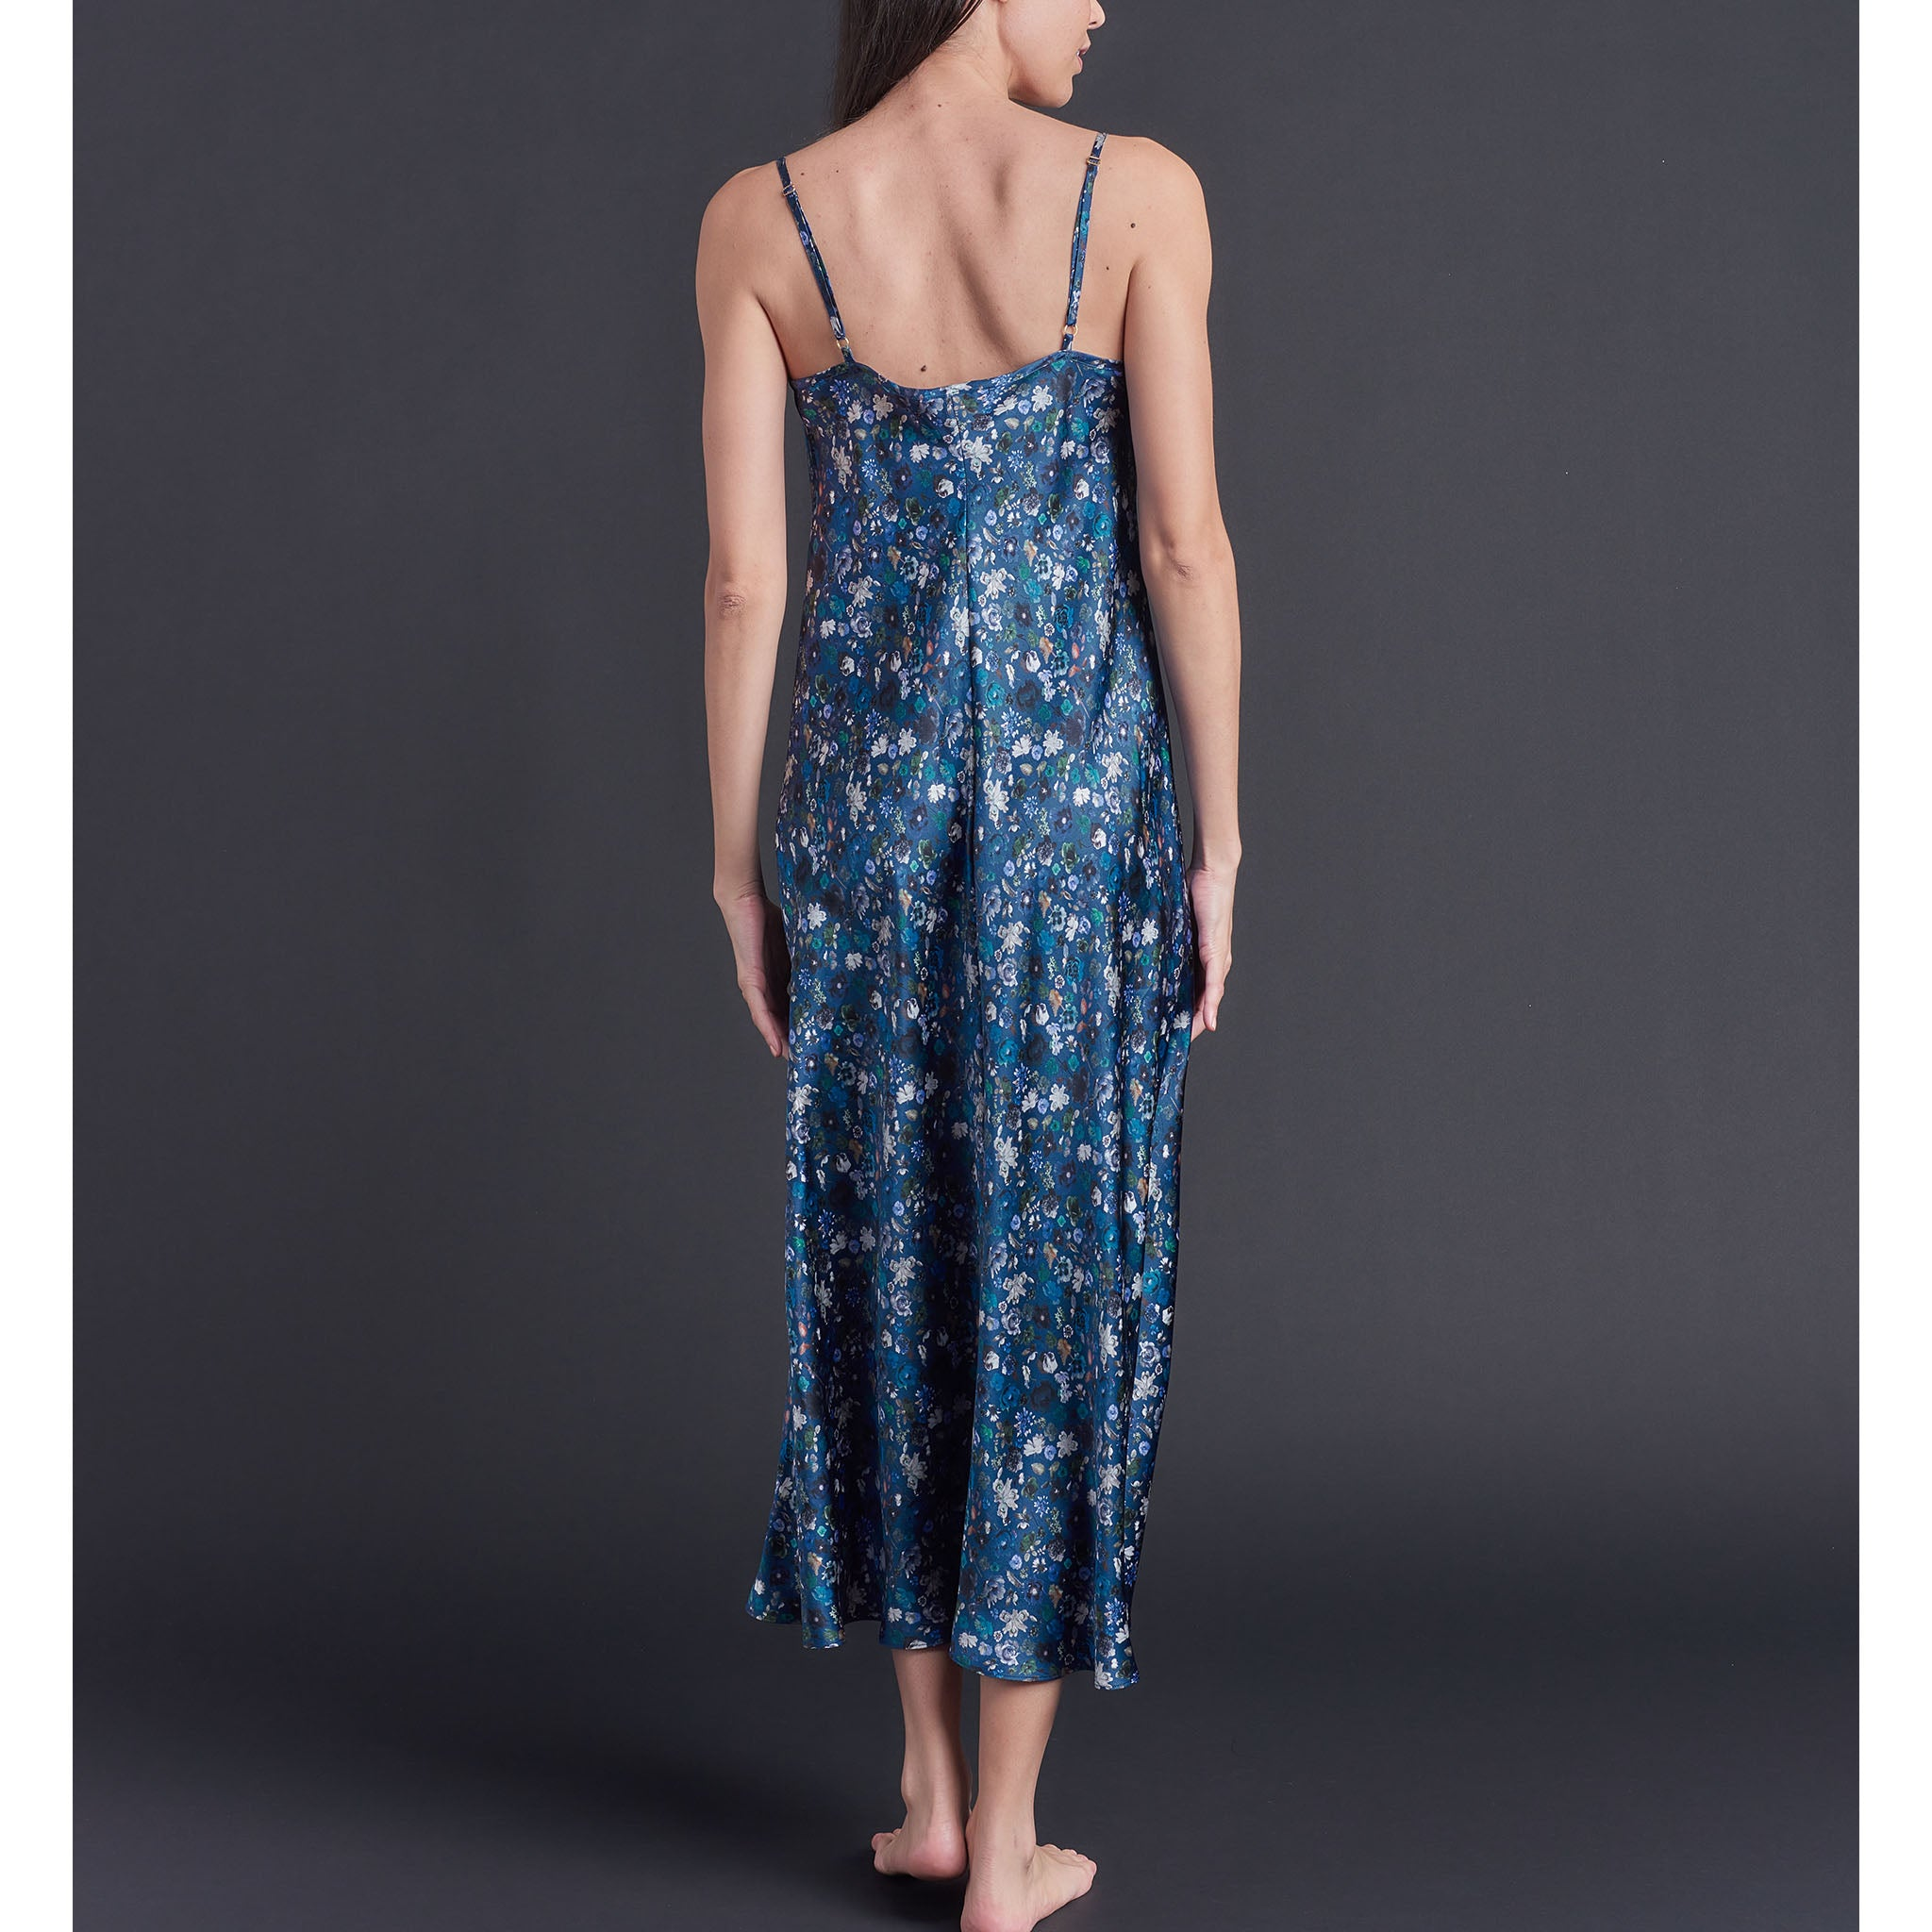 Thea Paneled Slip Dress in Floral Edit Liberty Print Silk Satin